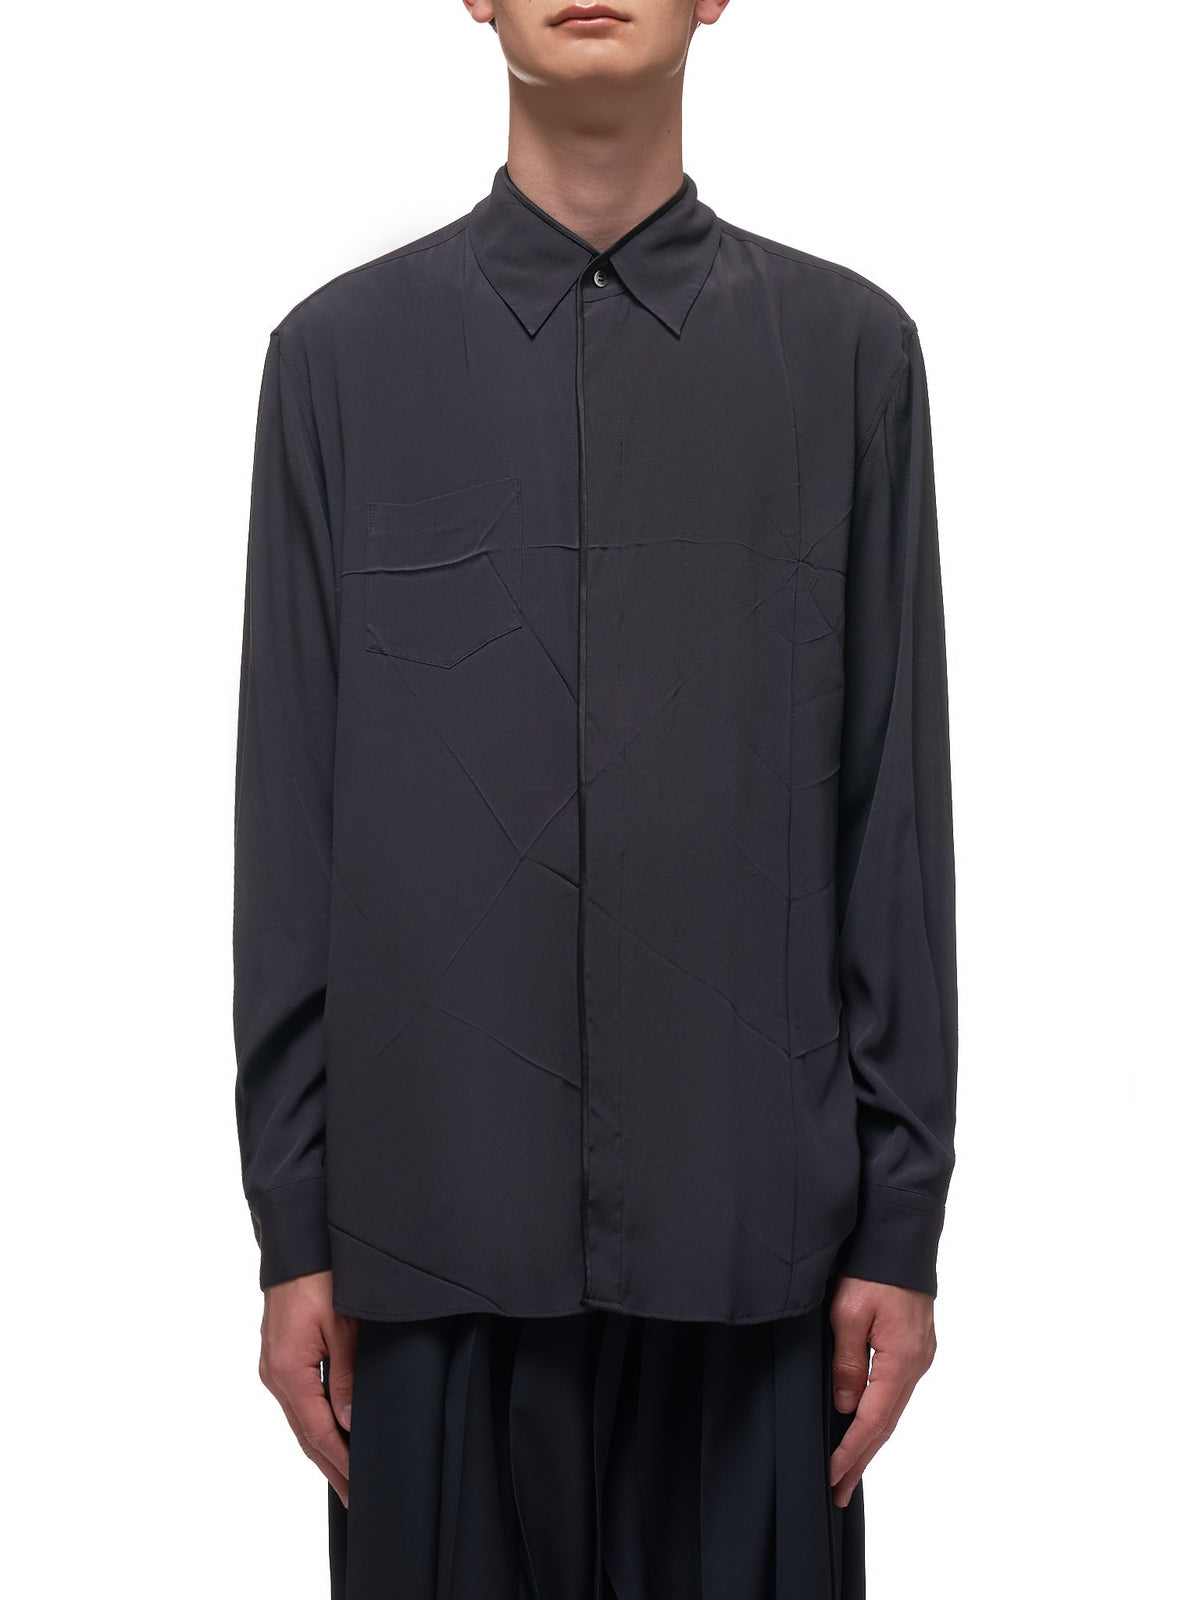 Undercover Shirt | H.Lorenzo - Front